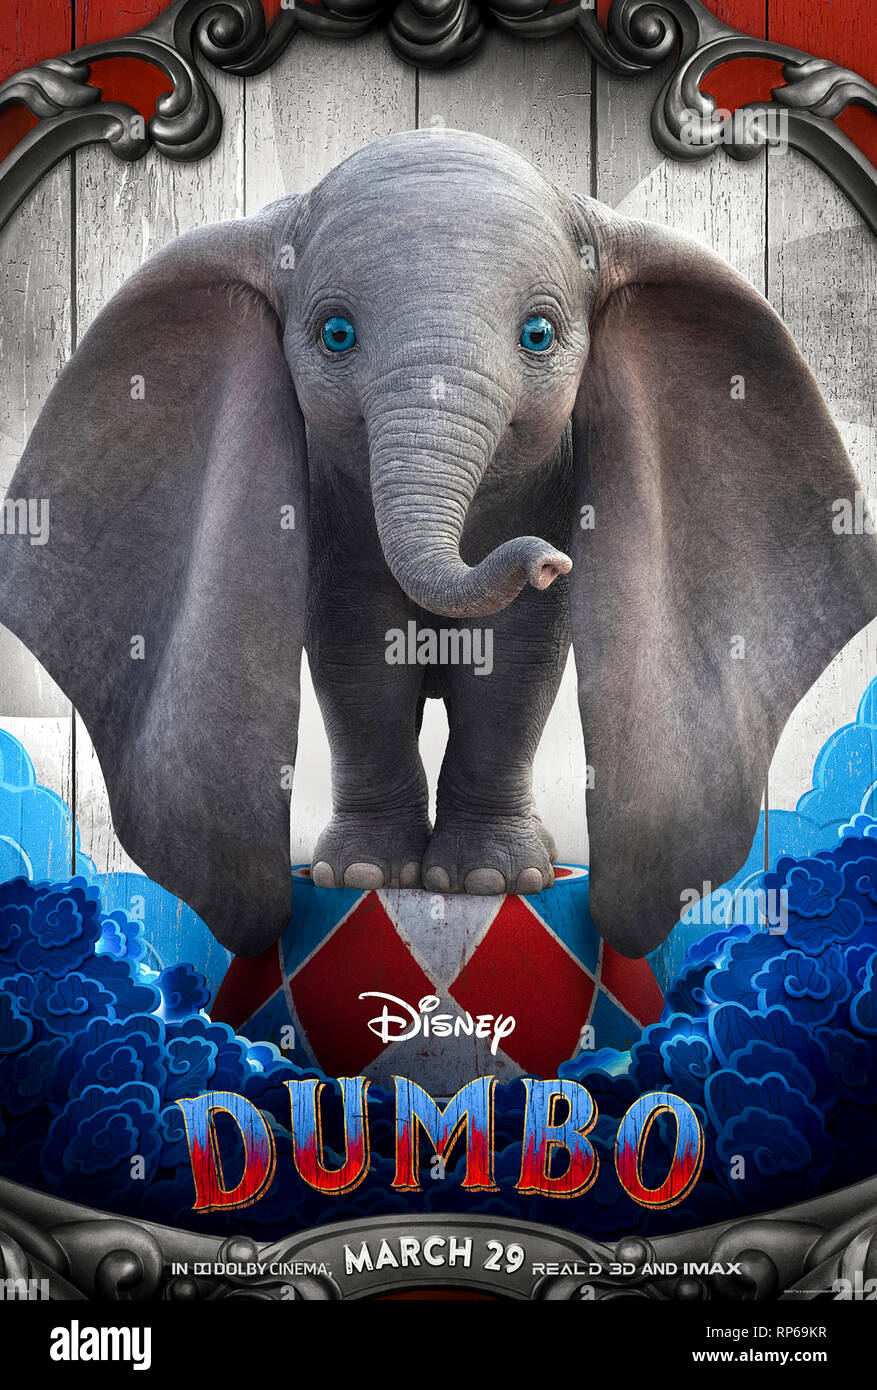 Dumbo (2019) directed by Tim Burton and starring Eva Green, Colin Farrell and Michael Keaton. - Stock Image